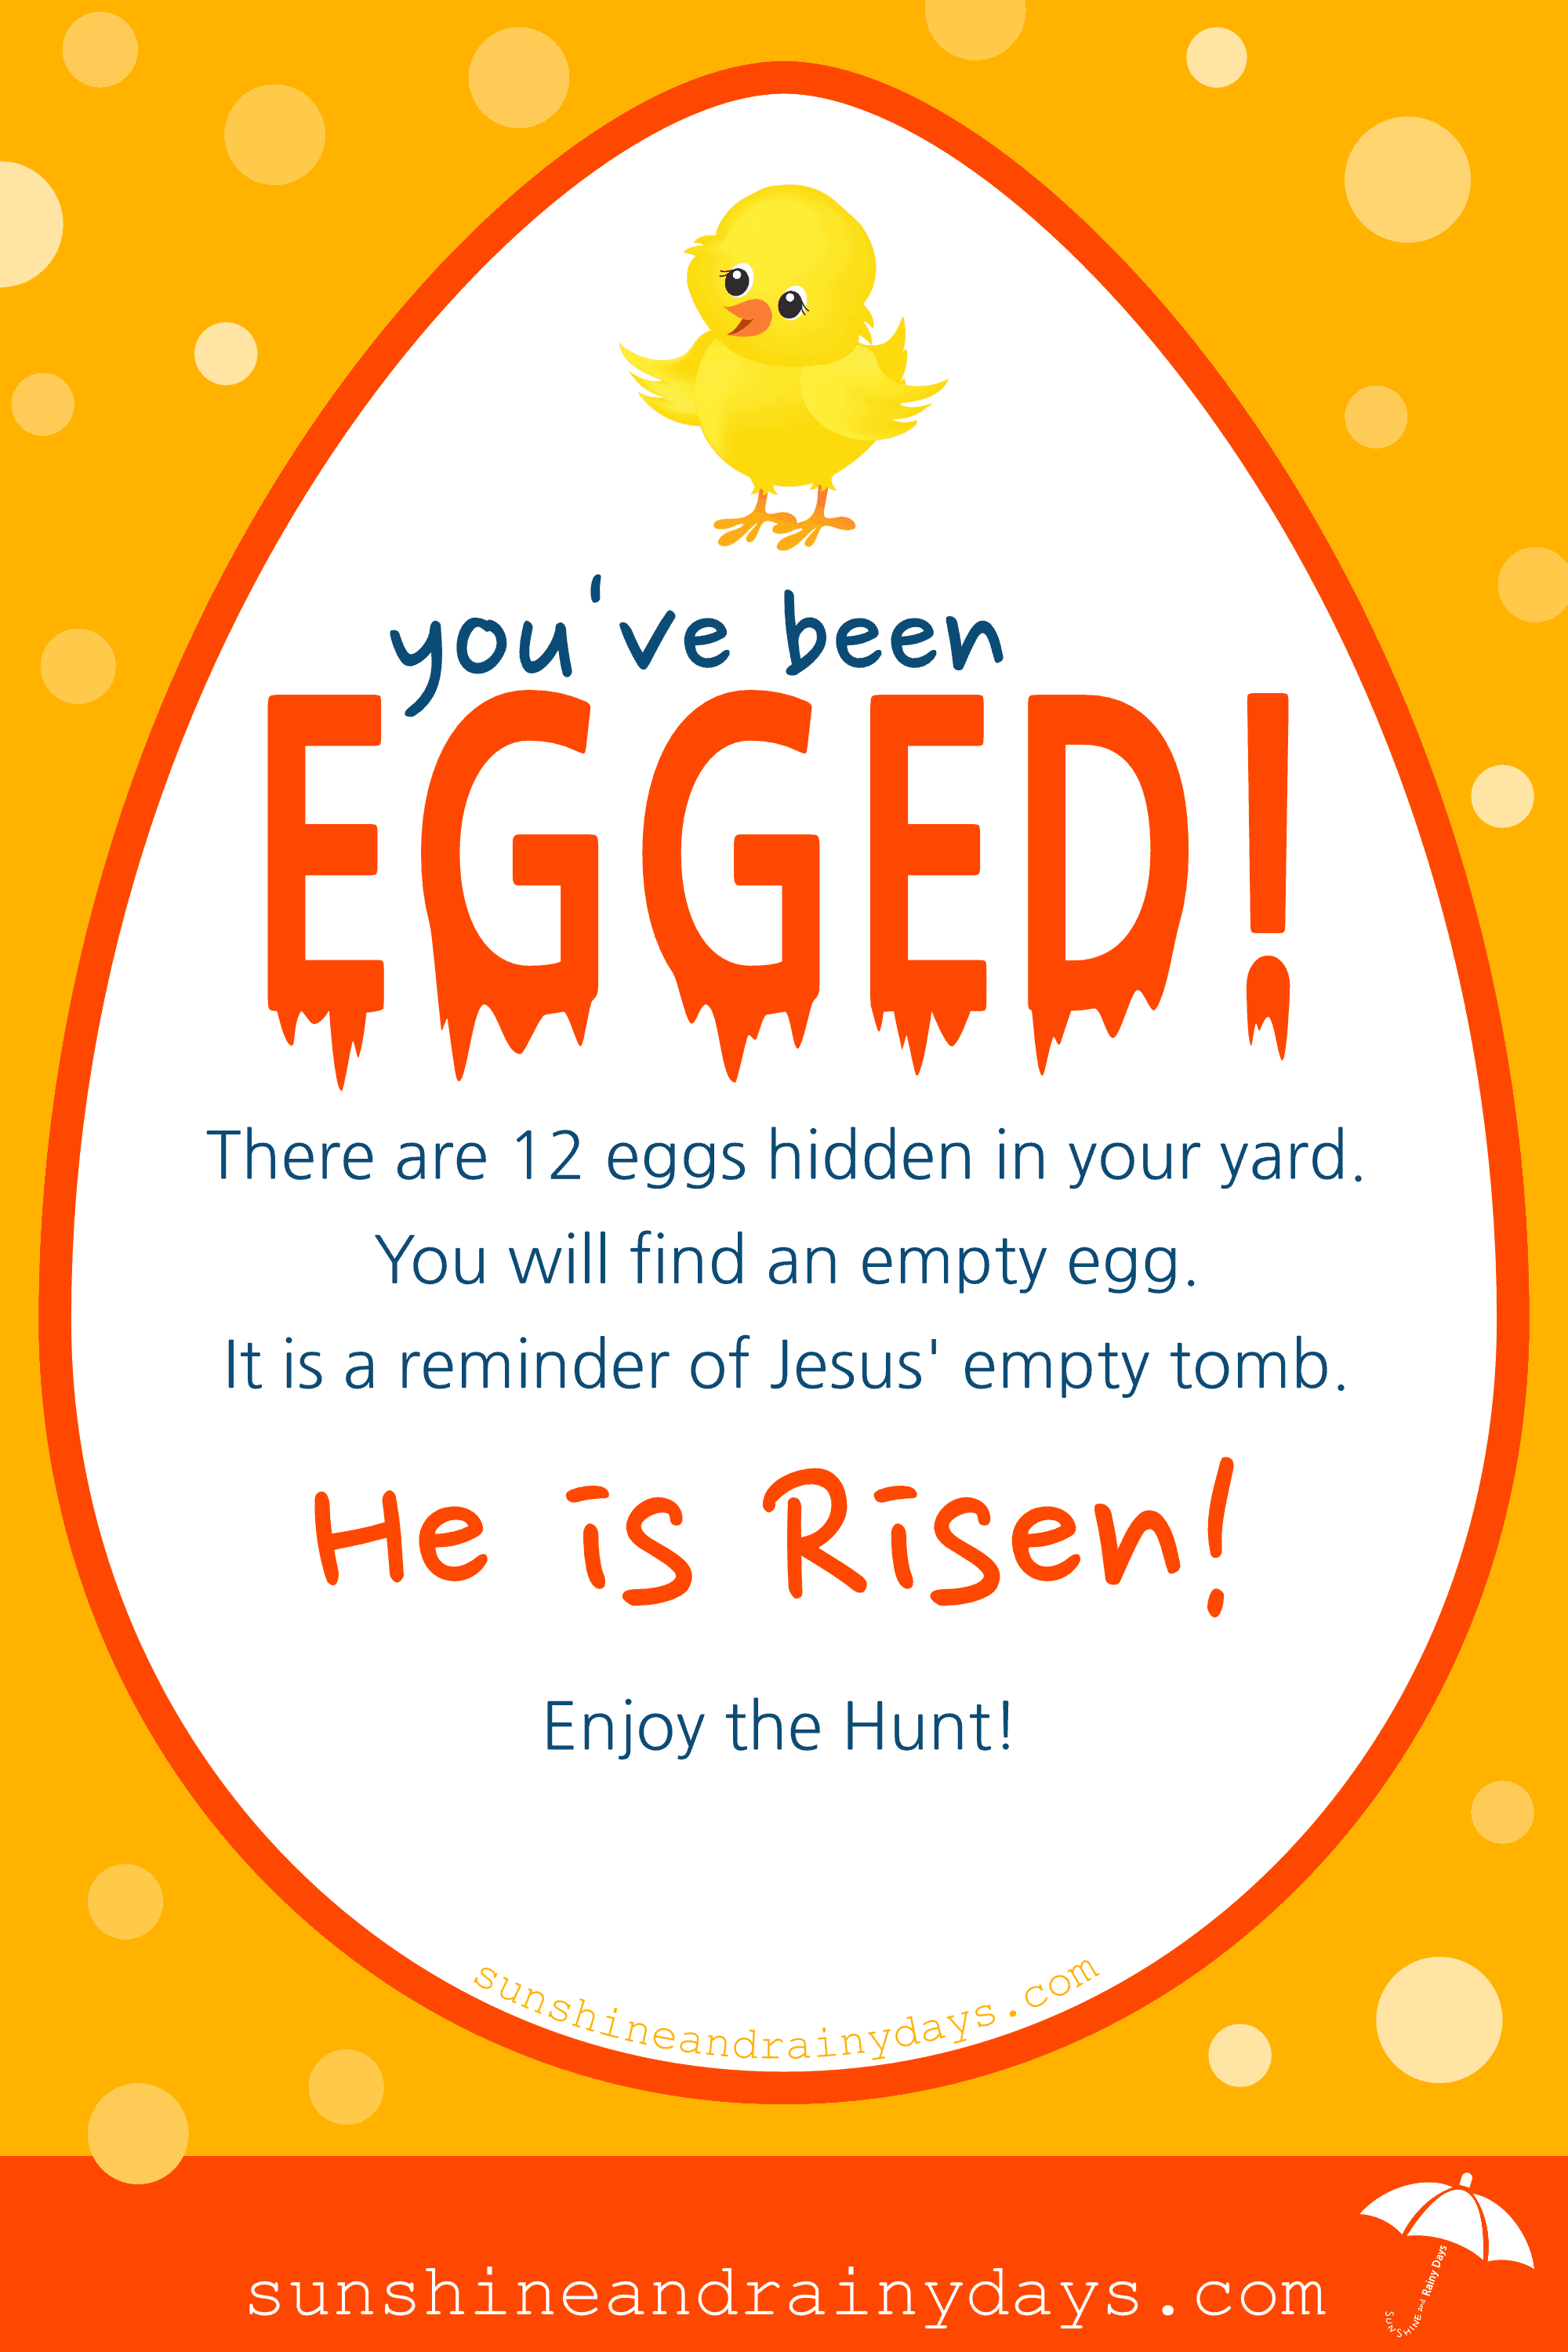 You've Ben Egged!